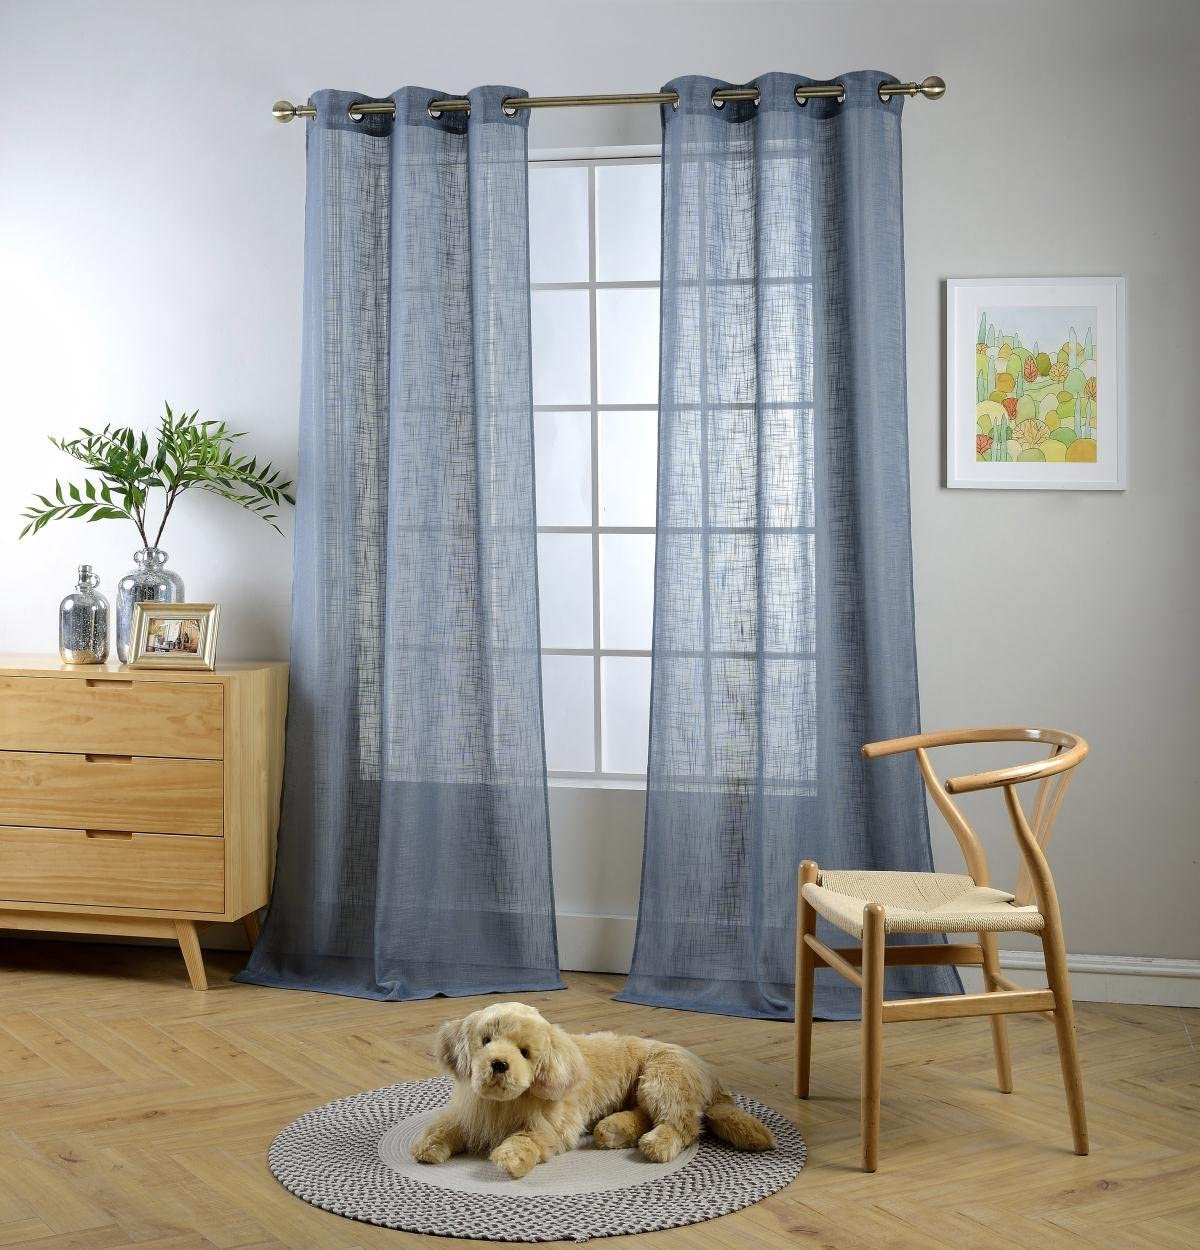 "MIUCO Semi Sheer Curtains Poly Linen Textured Solid Grommet Curtains 84 Inches Long for Living Room 2 Panels (2 x 37 Wide x 84"" Long) Dusty Blue"